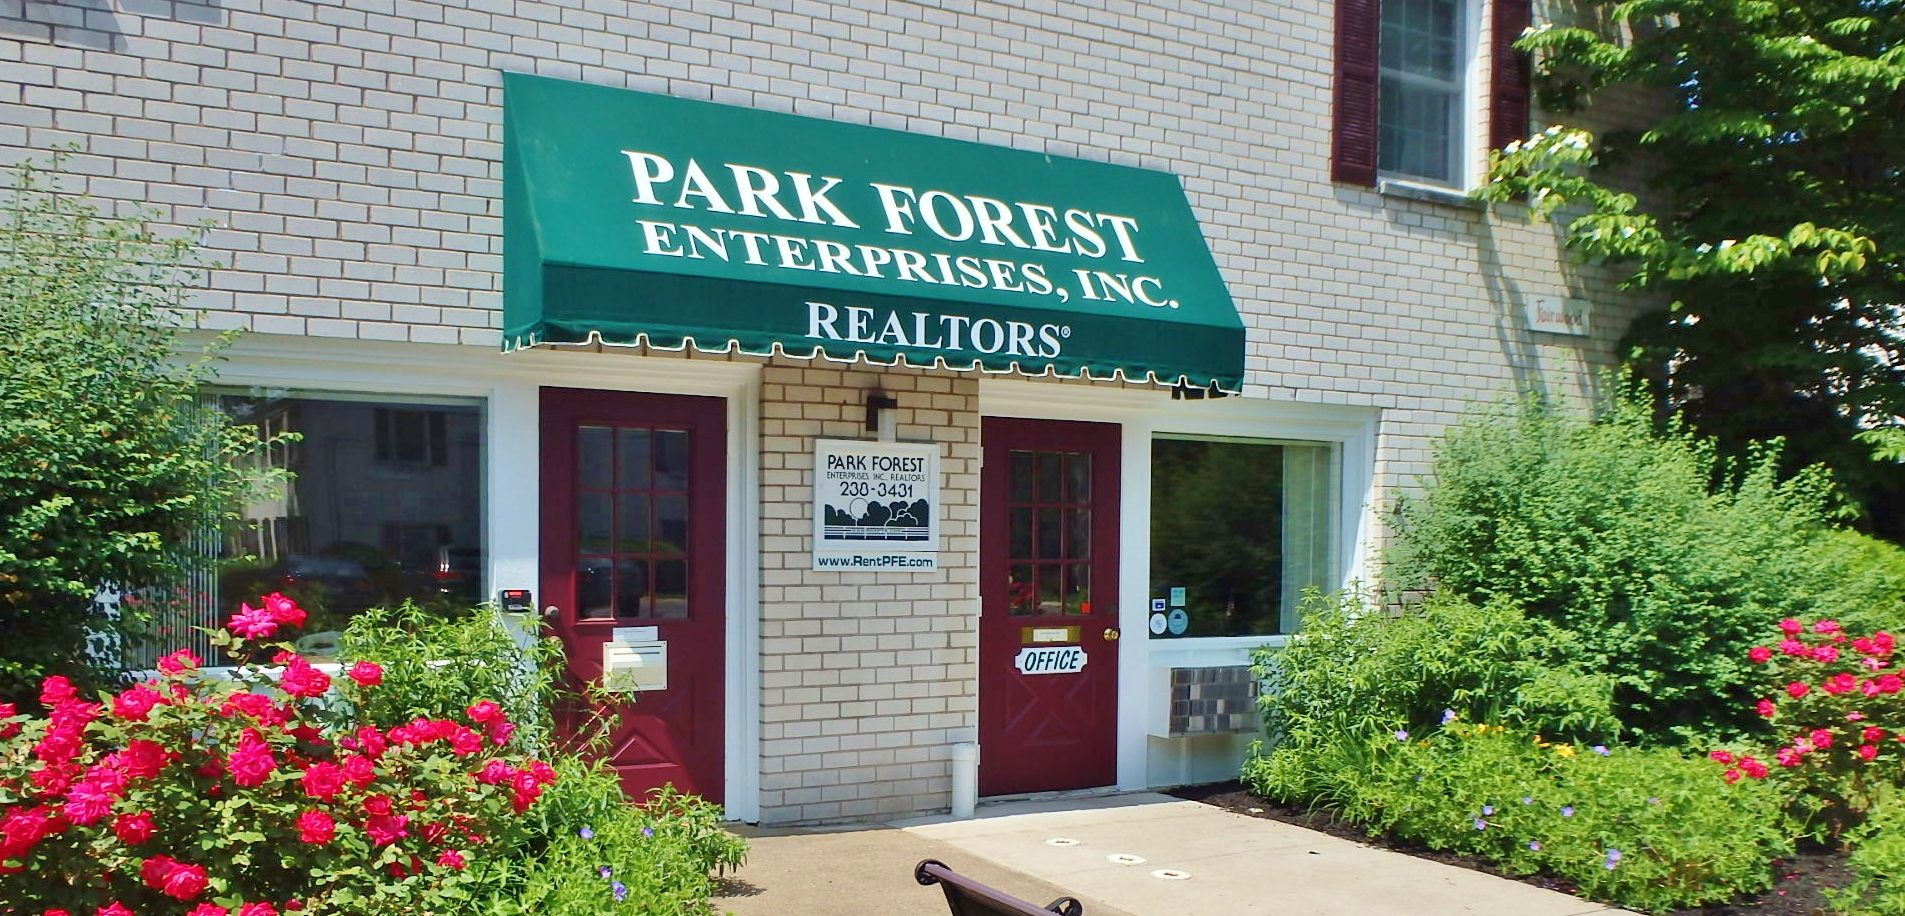 Park Forest Villas, Office, Enterprises